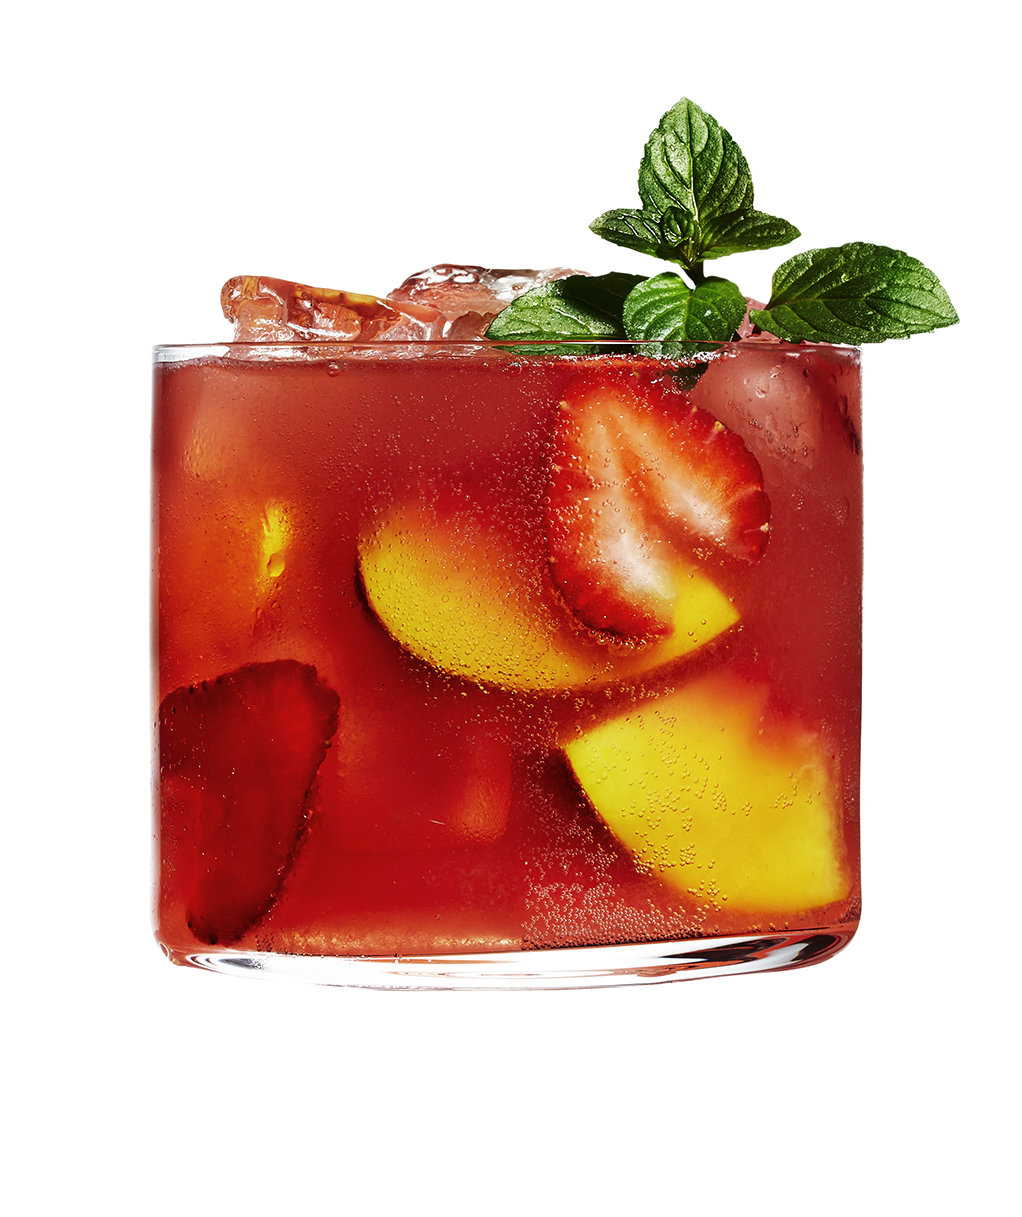 strawberry-rhubarb-sangria